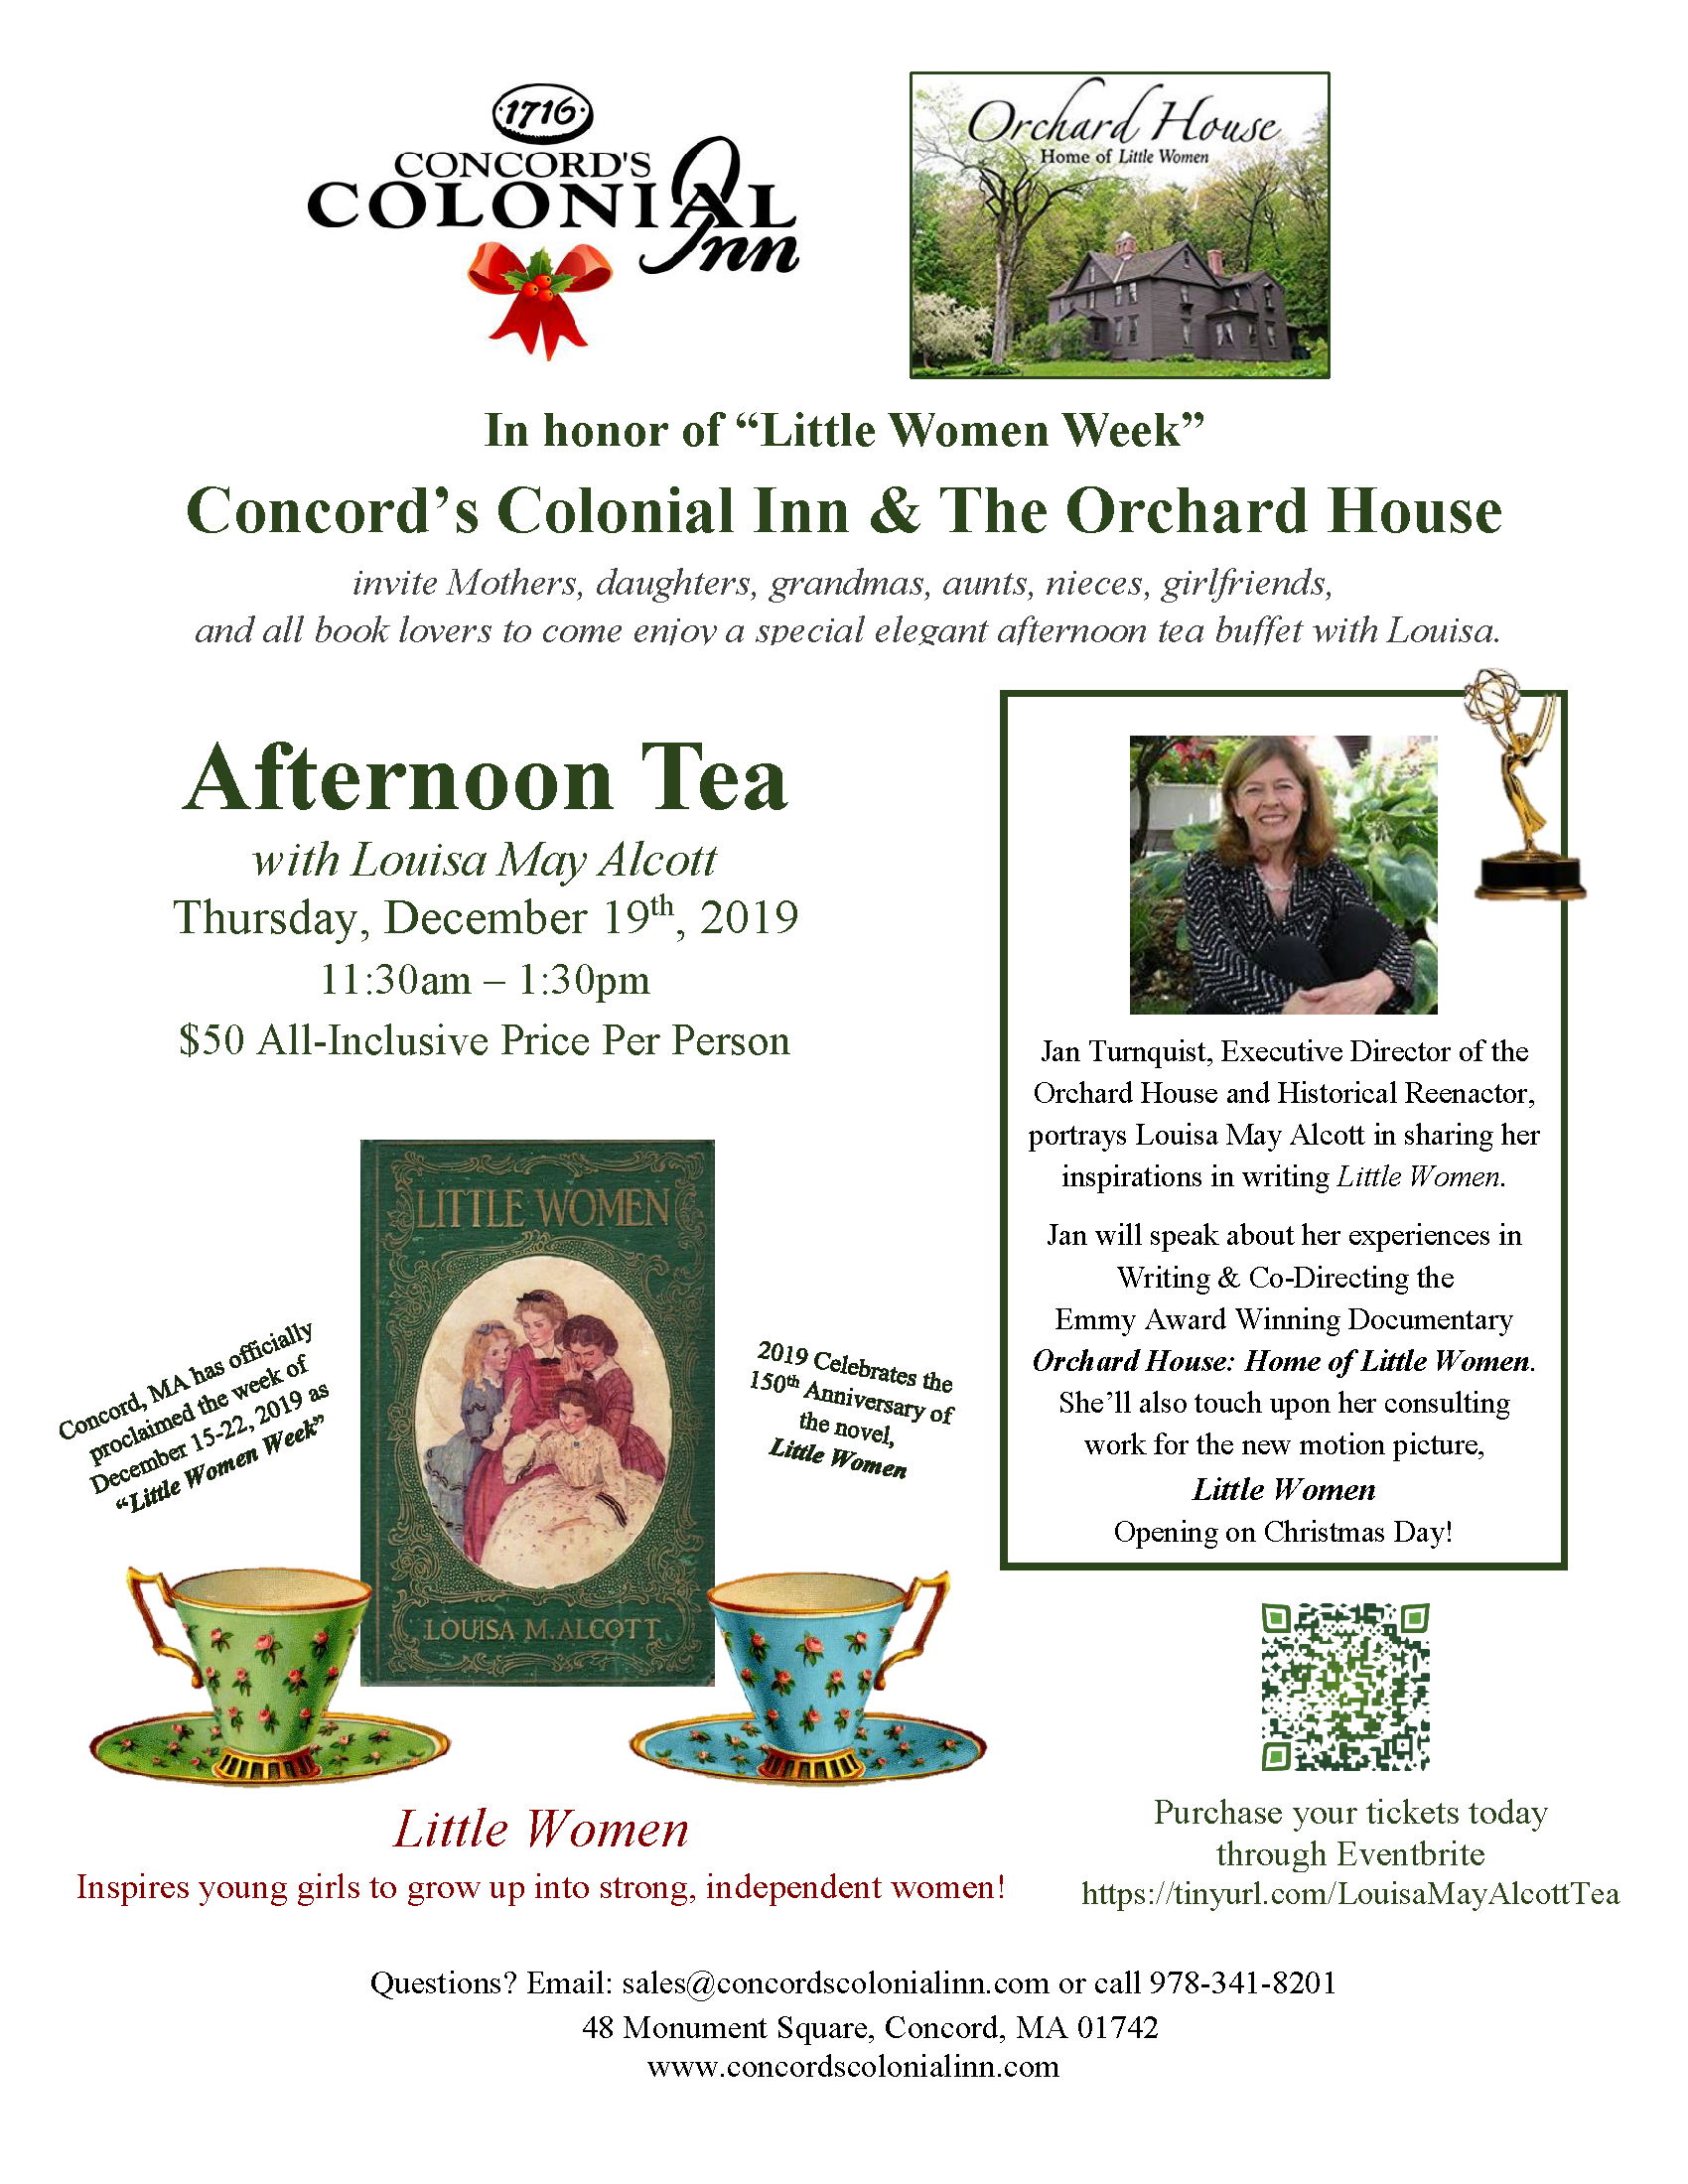 Afternoon Tea Buffet with Louisa May Alcott_Concords Colonial Inn_12.19.19. 2 (2)